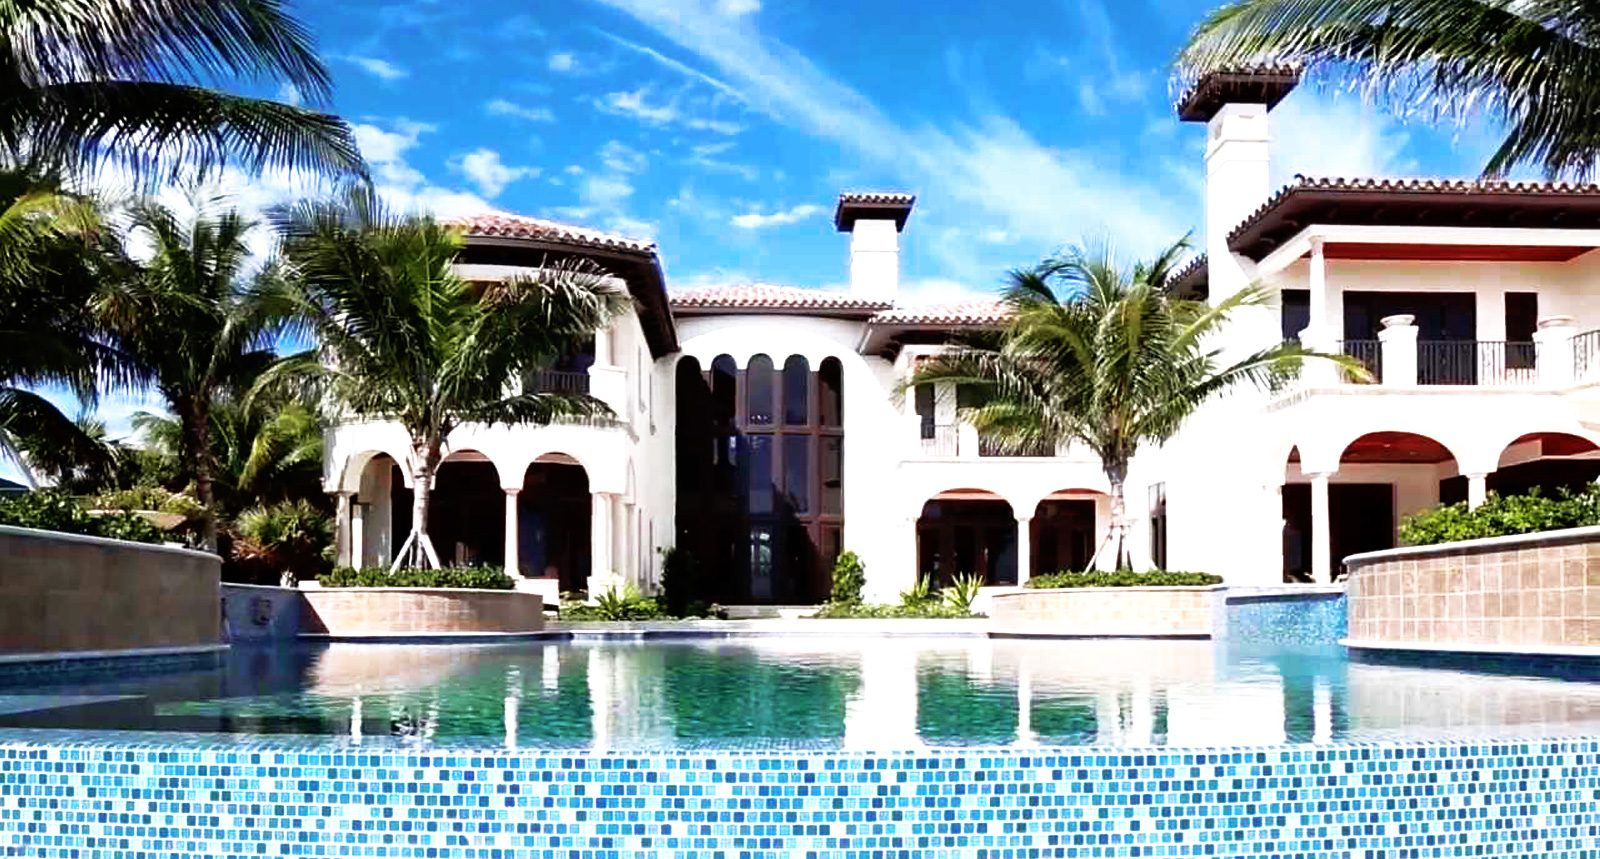 House with pool - Parker Realty Group